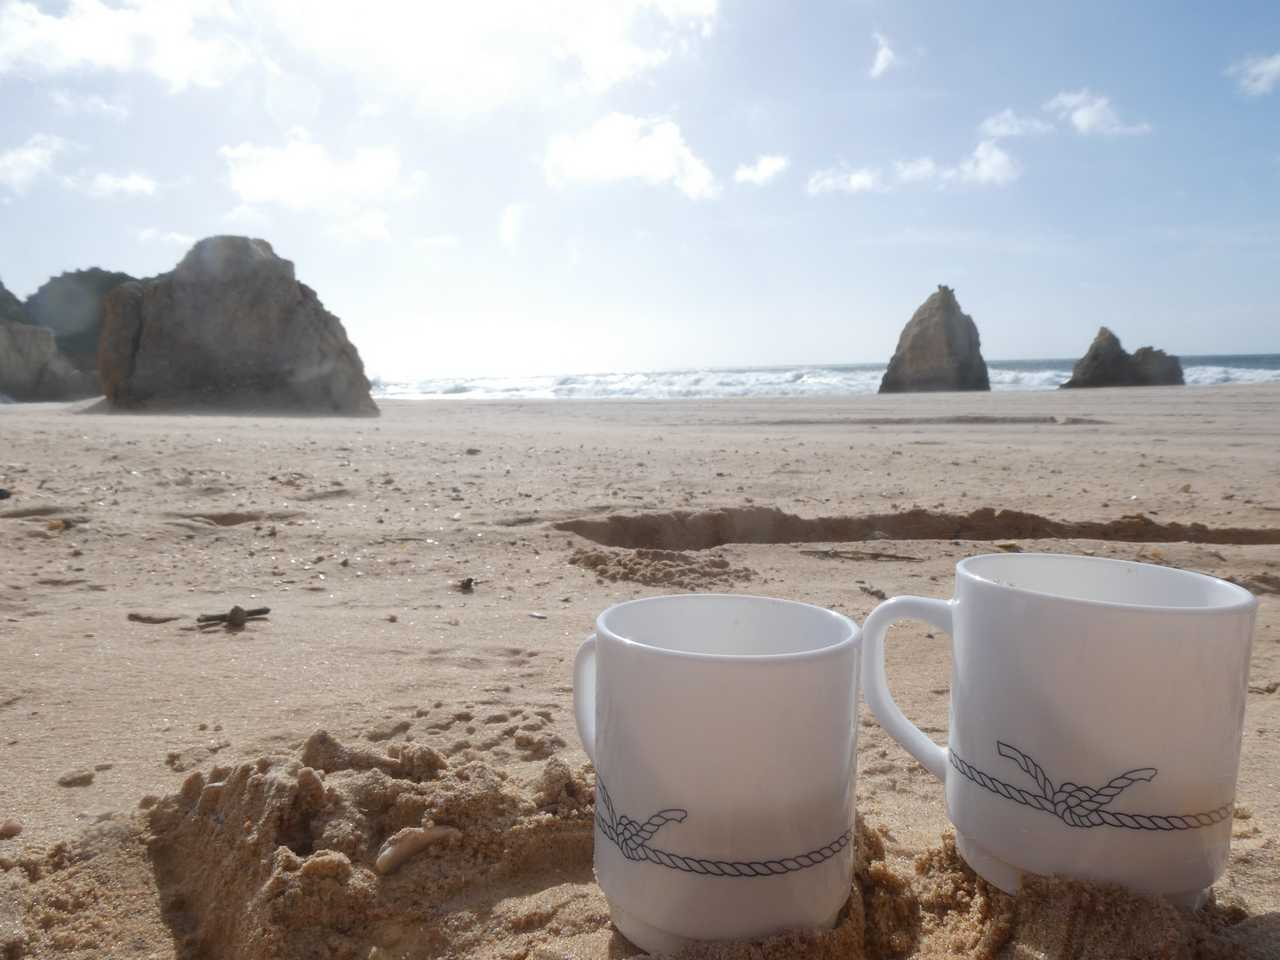 What a start to the day. Coffee on the beach.